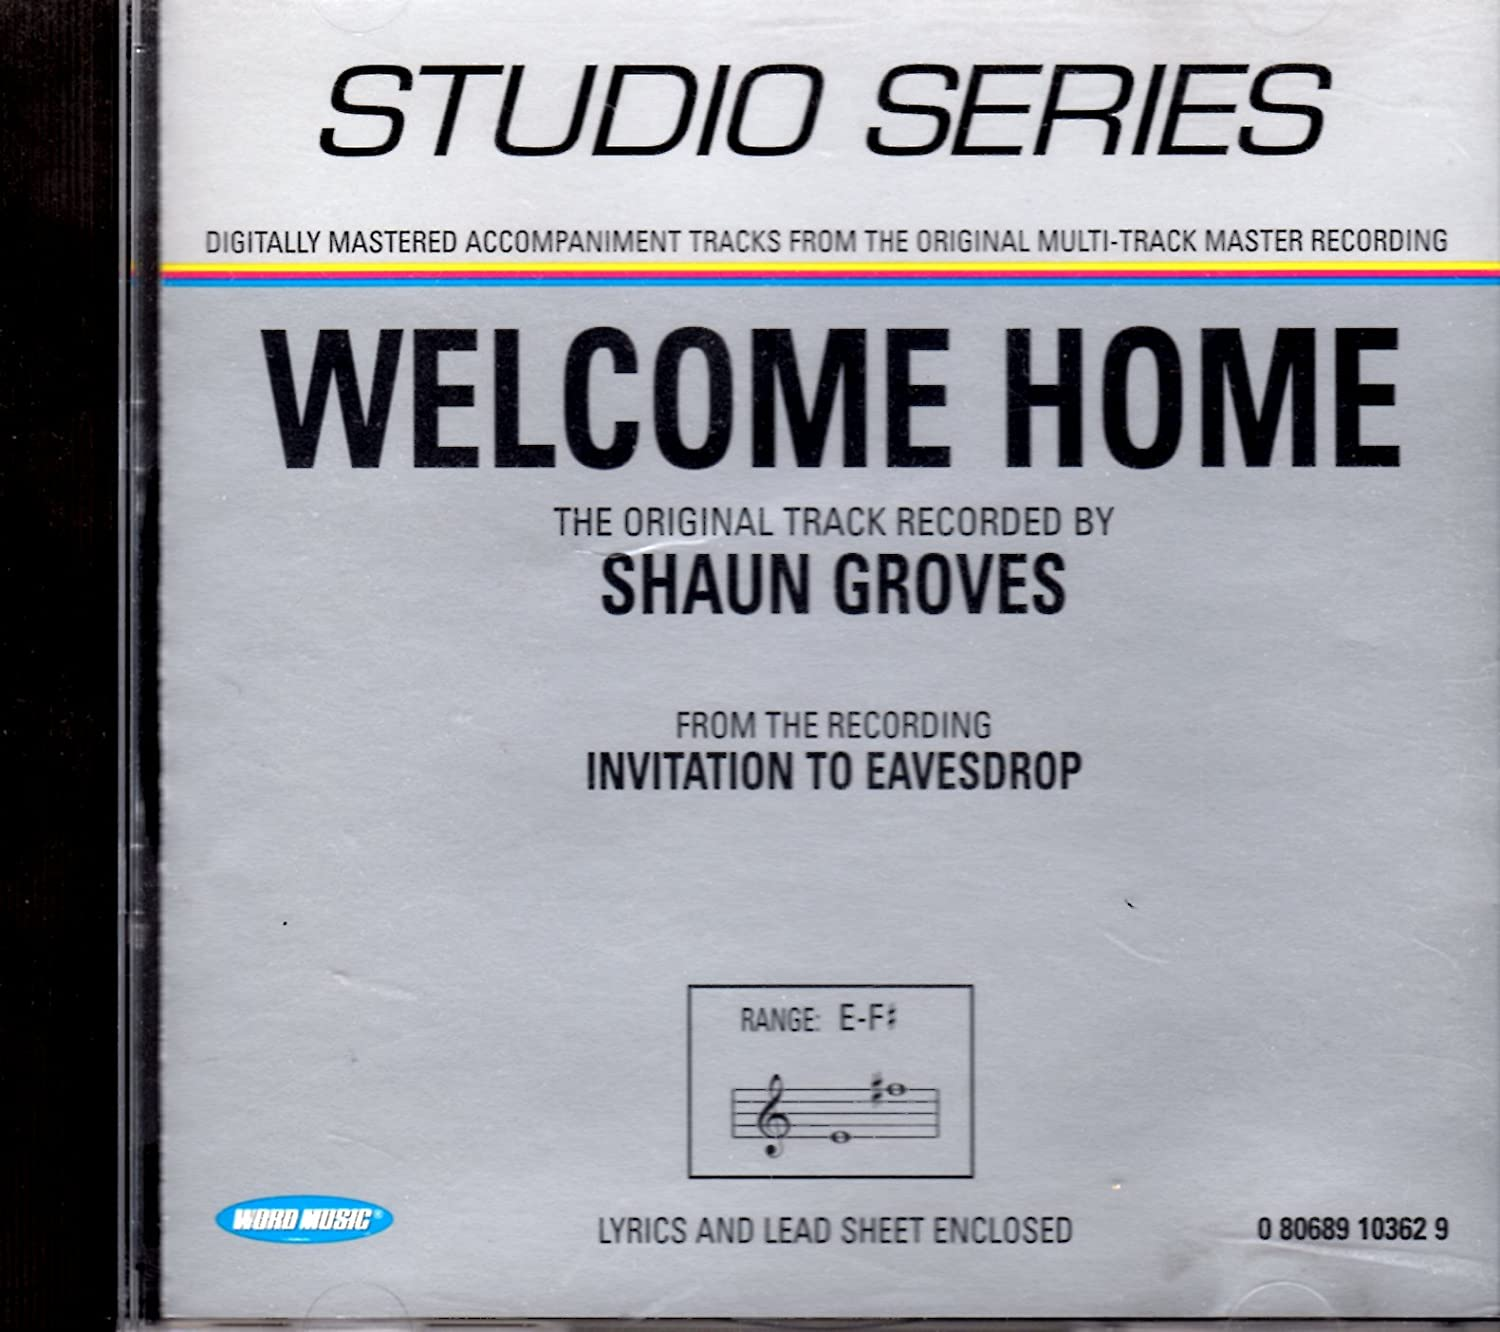 Studio Series - Welcome Home by Shaun Groves